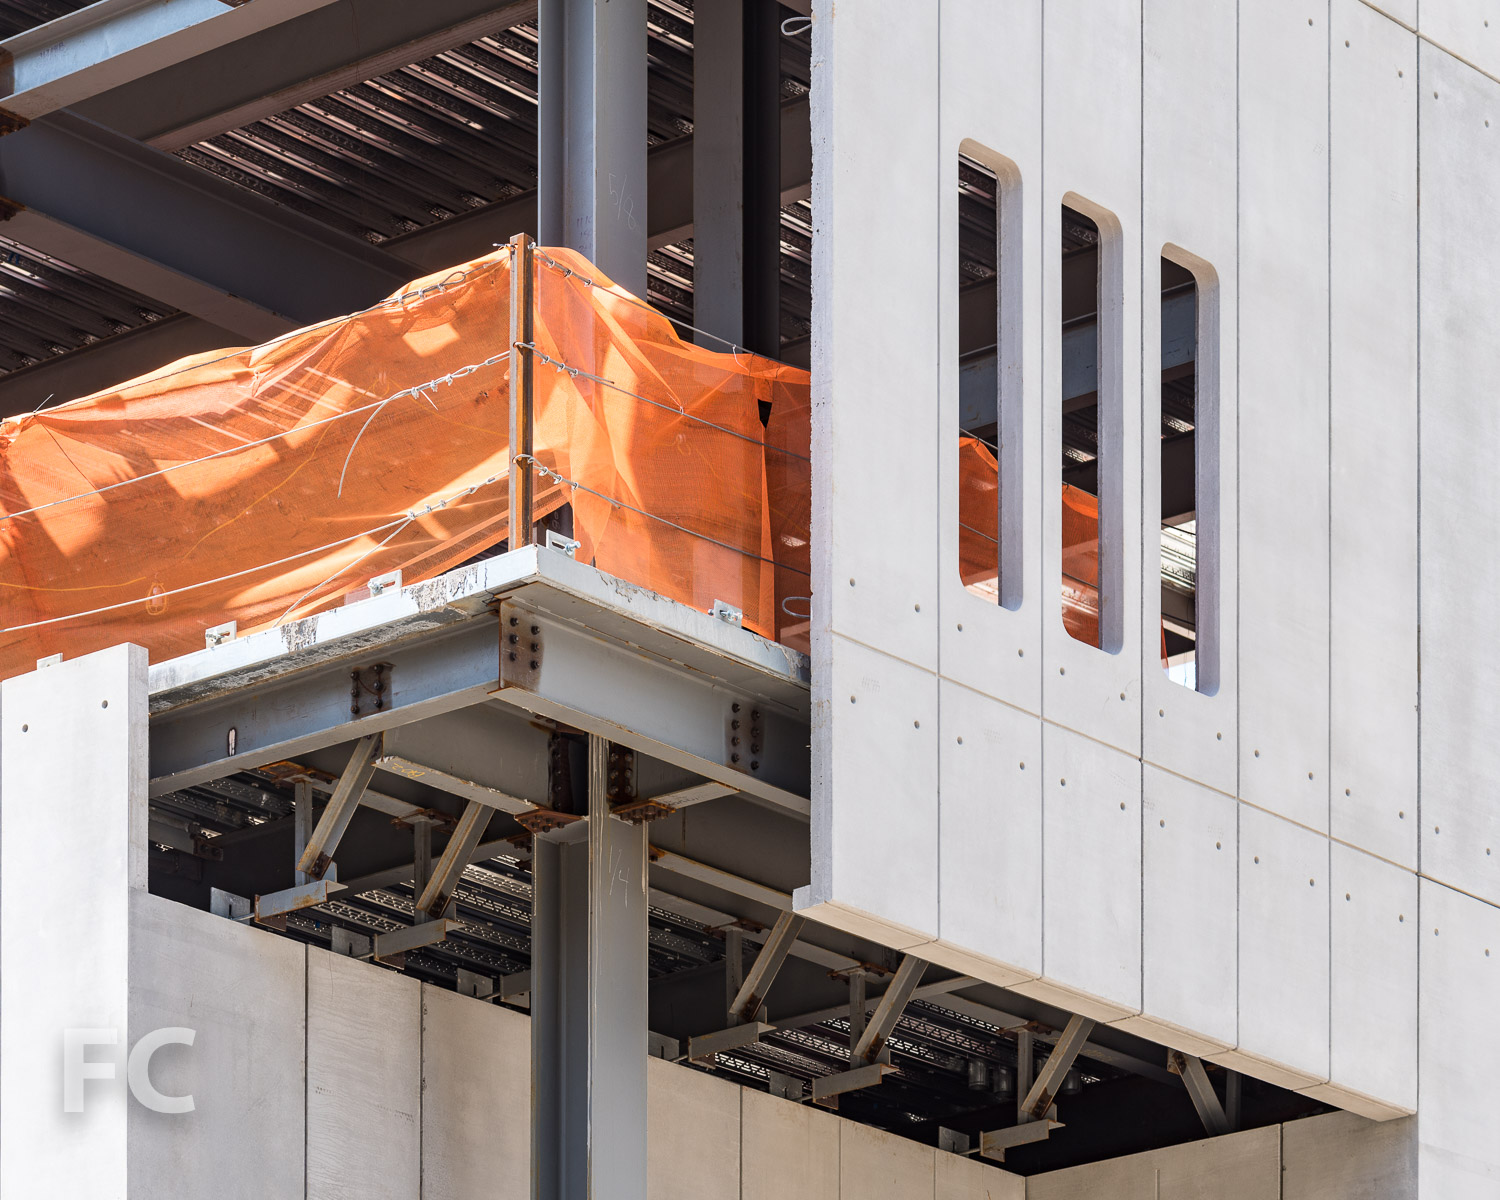 Close-up of the facade cladding of the Academic Conference Center at the northeast corner.